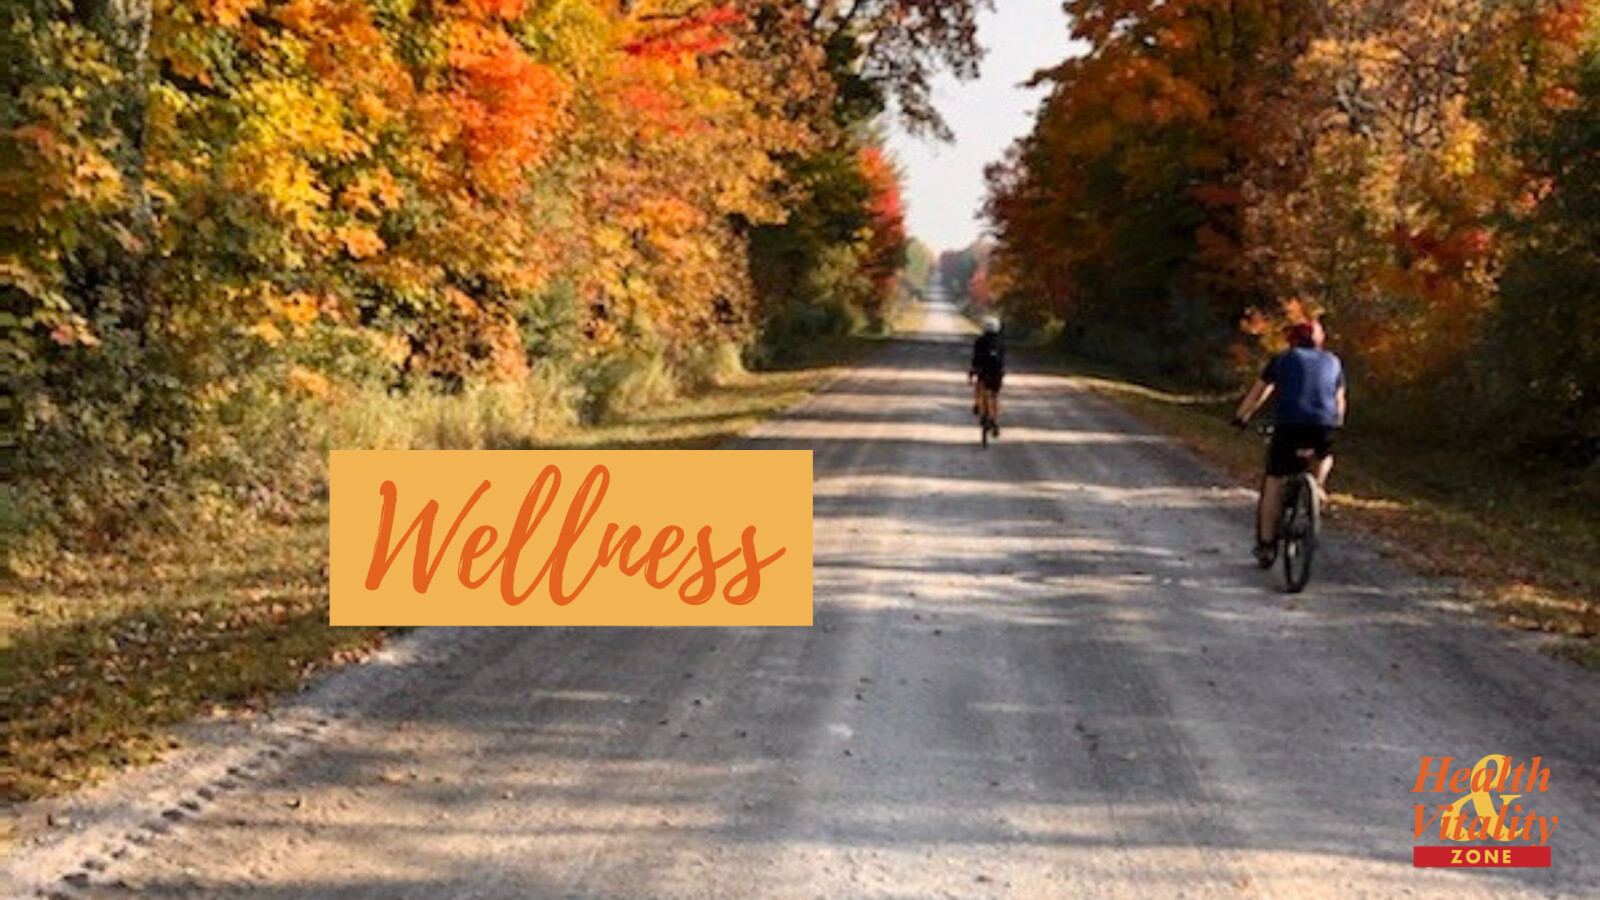 Wellness Does Mean Something